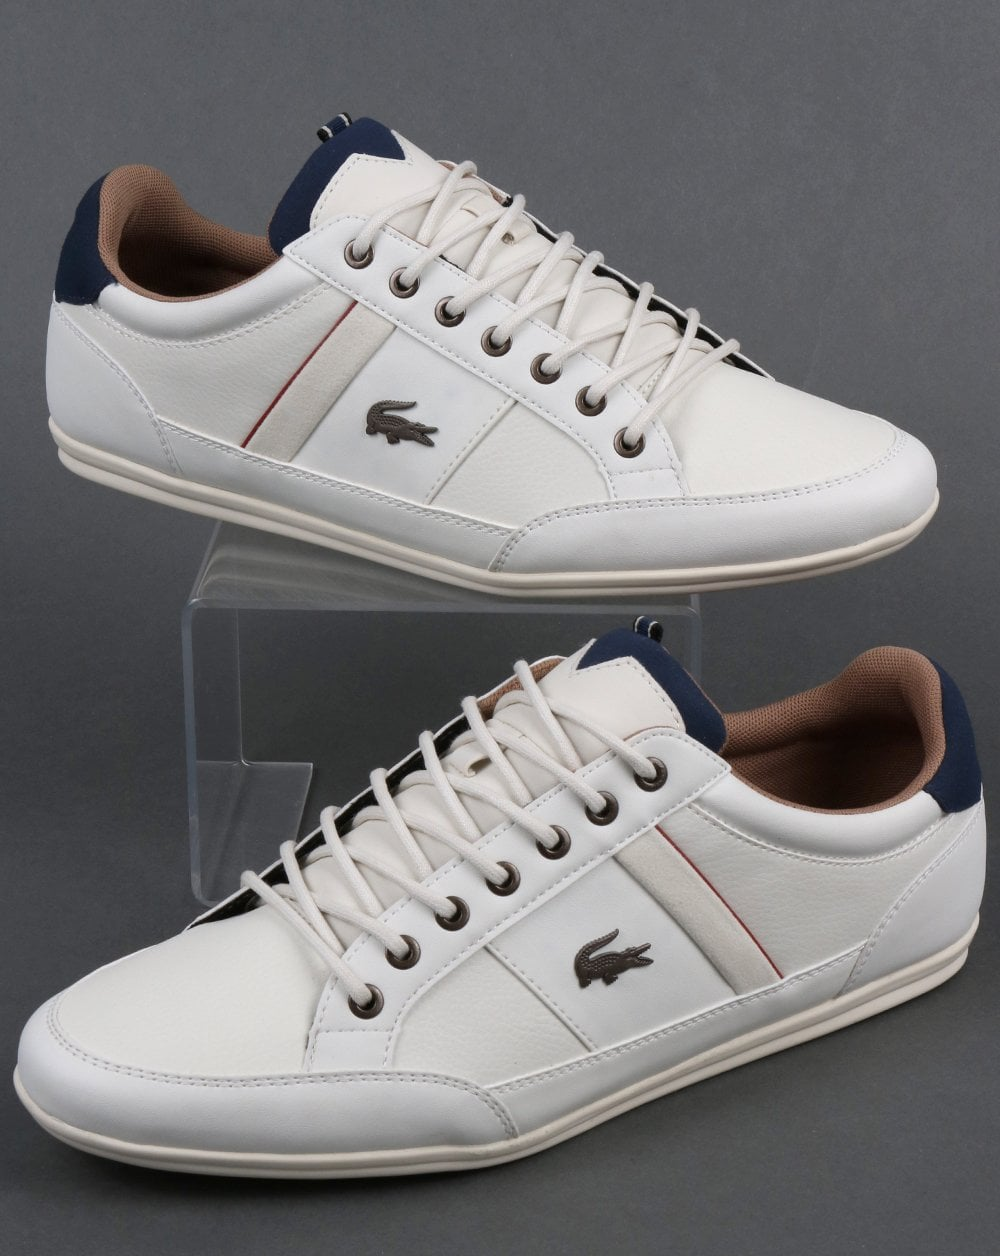 Lacoste Chaymon Trainers Off White/Navy